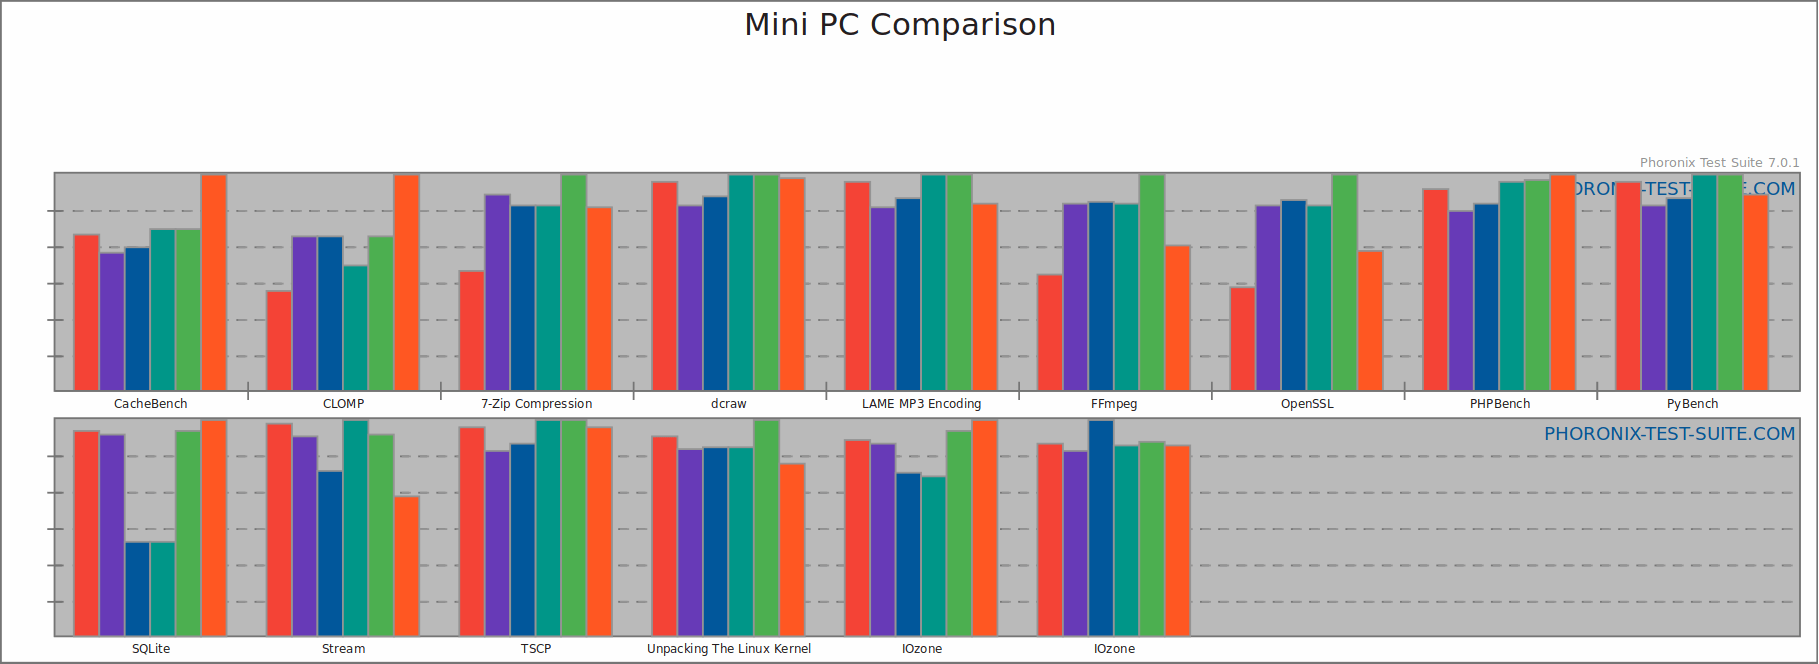 Mini PC Comparison Chart